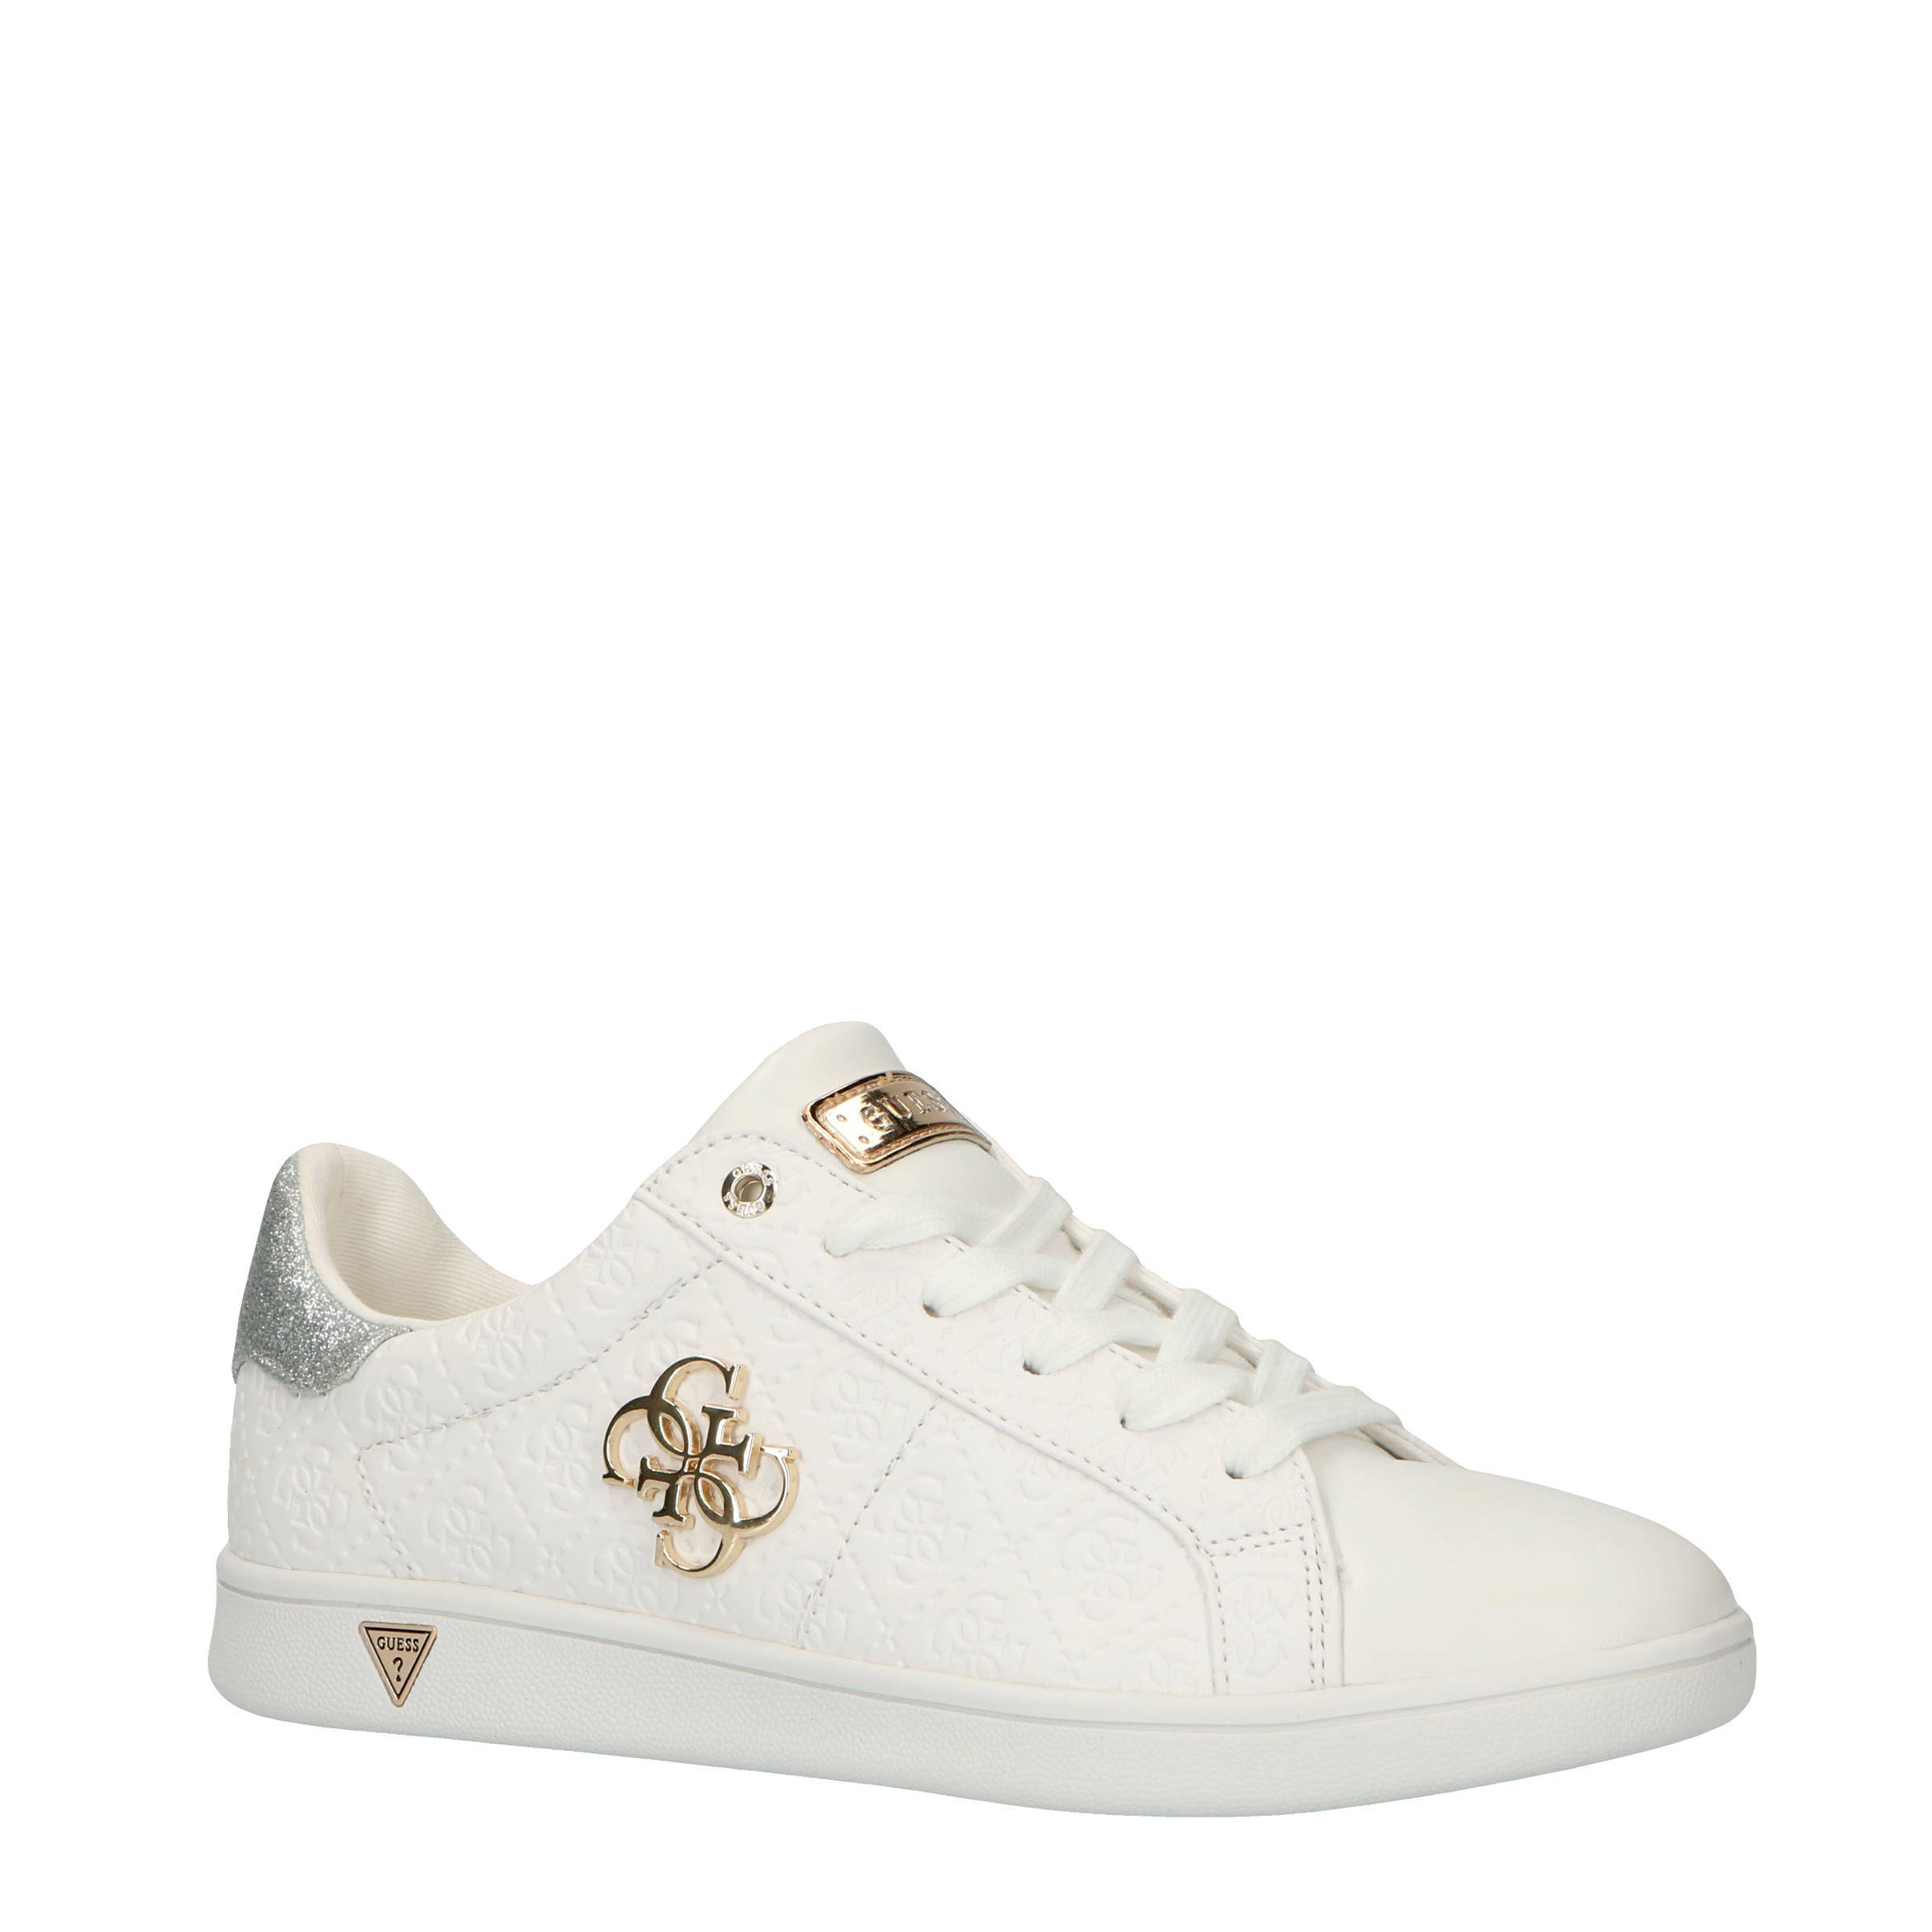 Baysic2 sneakers wit